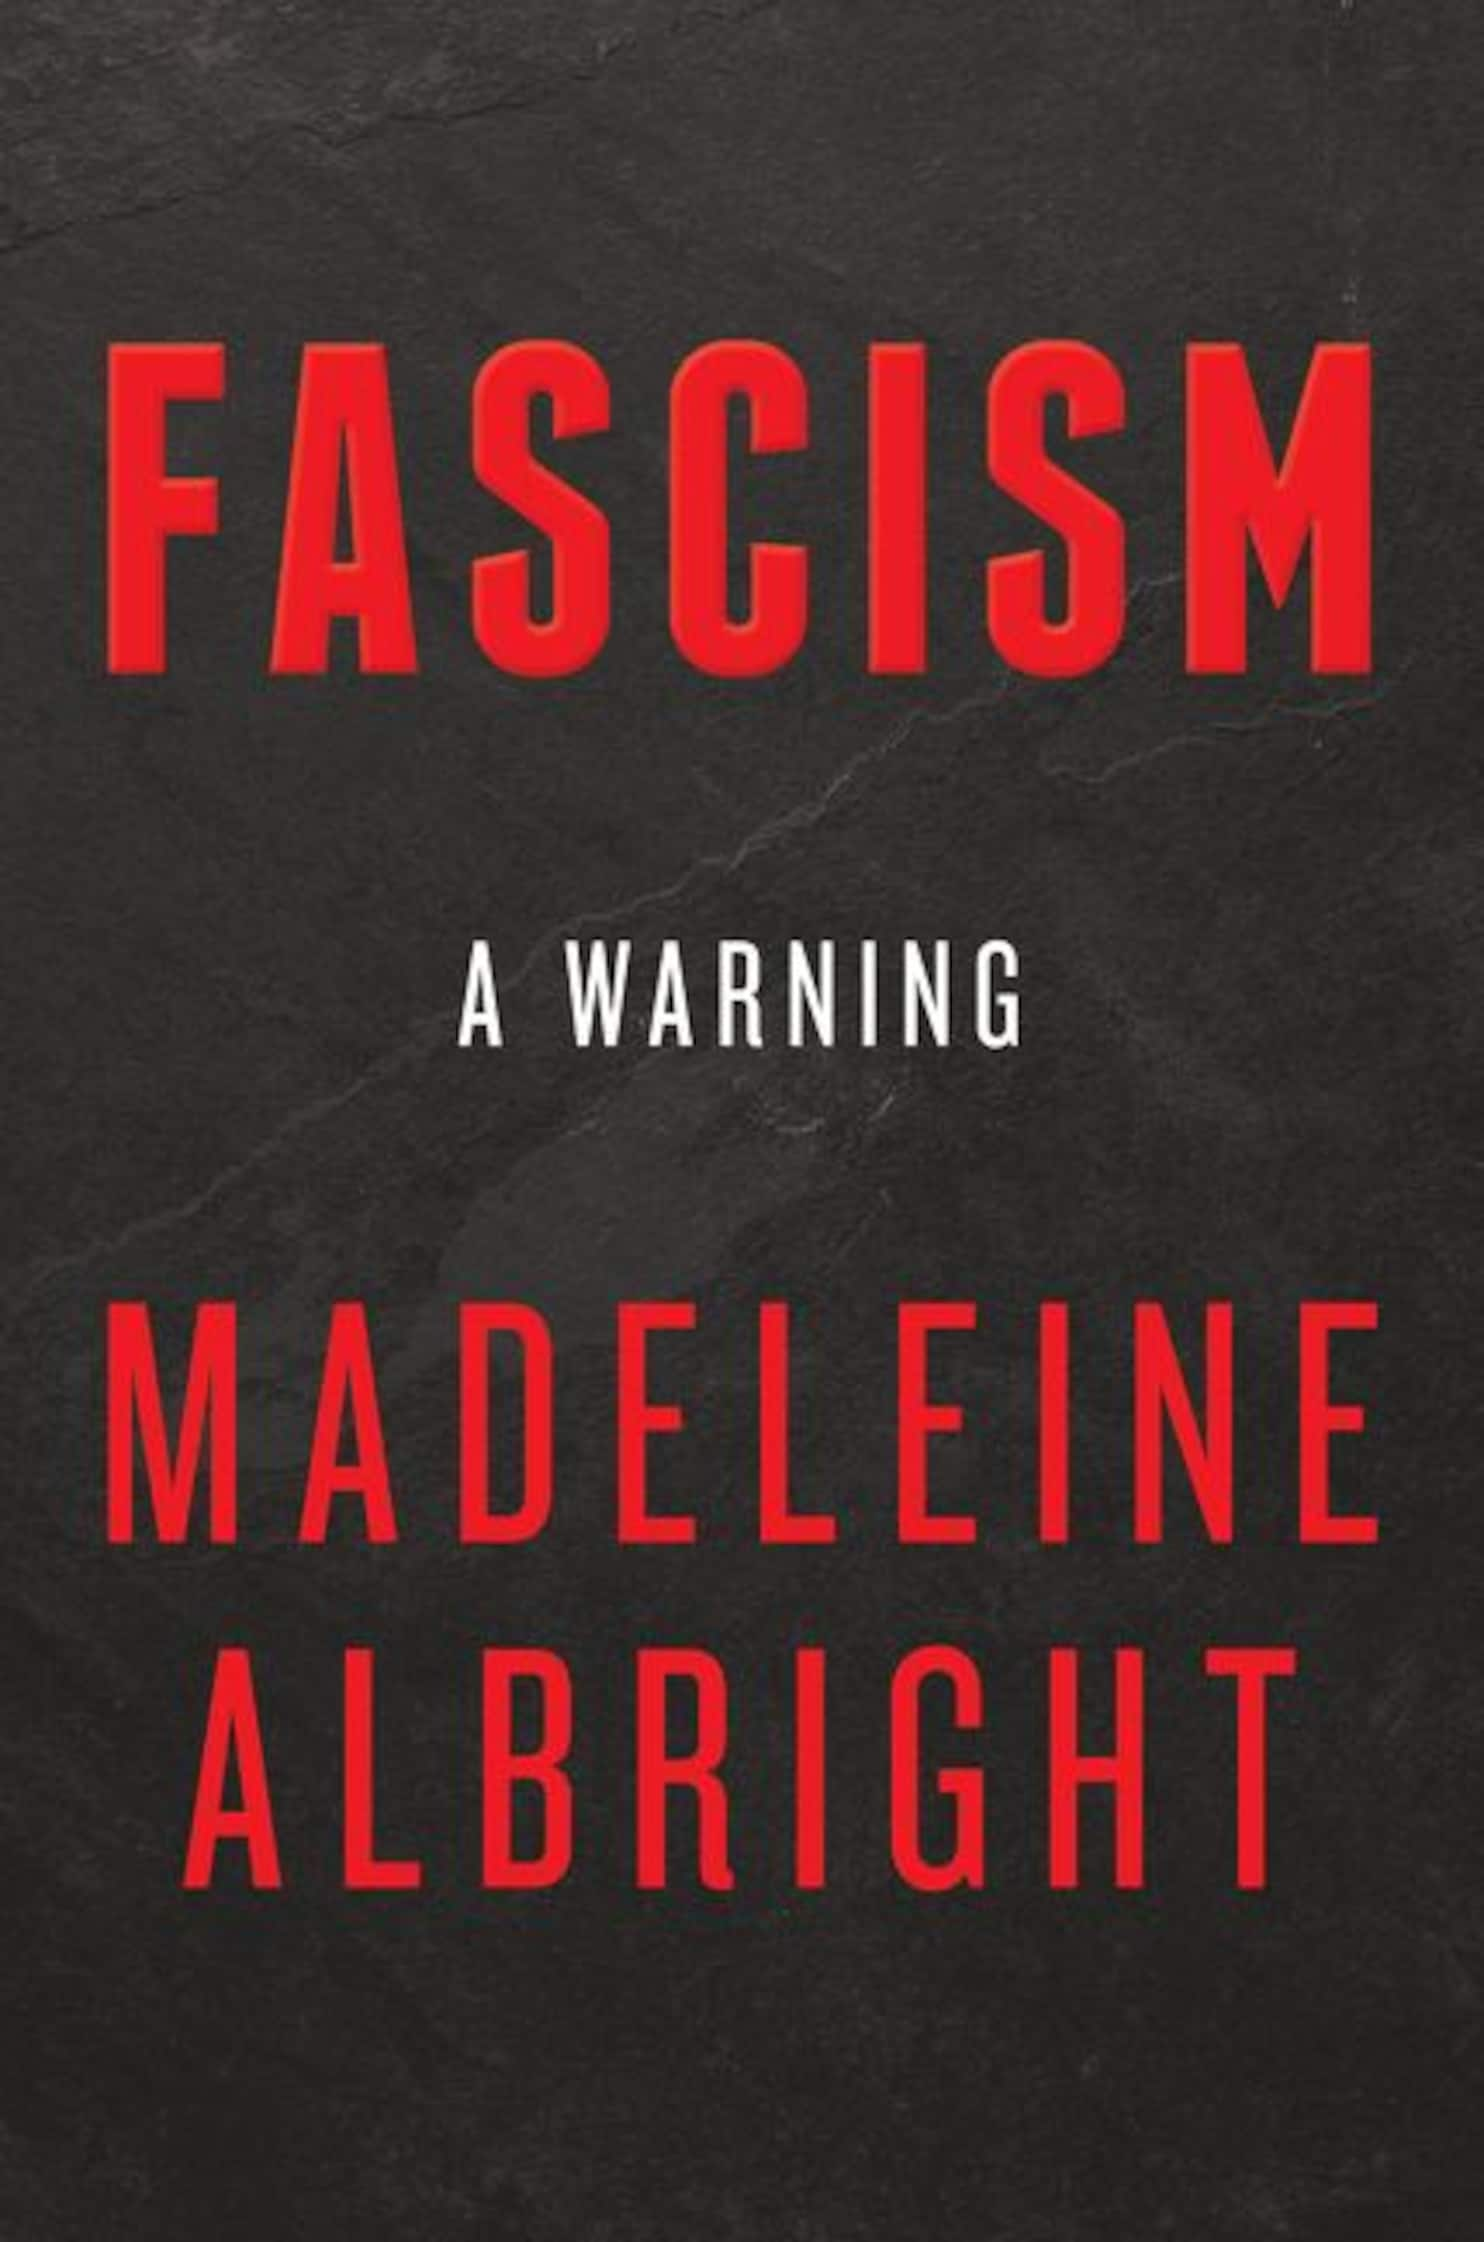 Book review of Fascism A Warning by Madeleine Albright